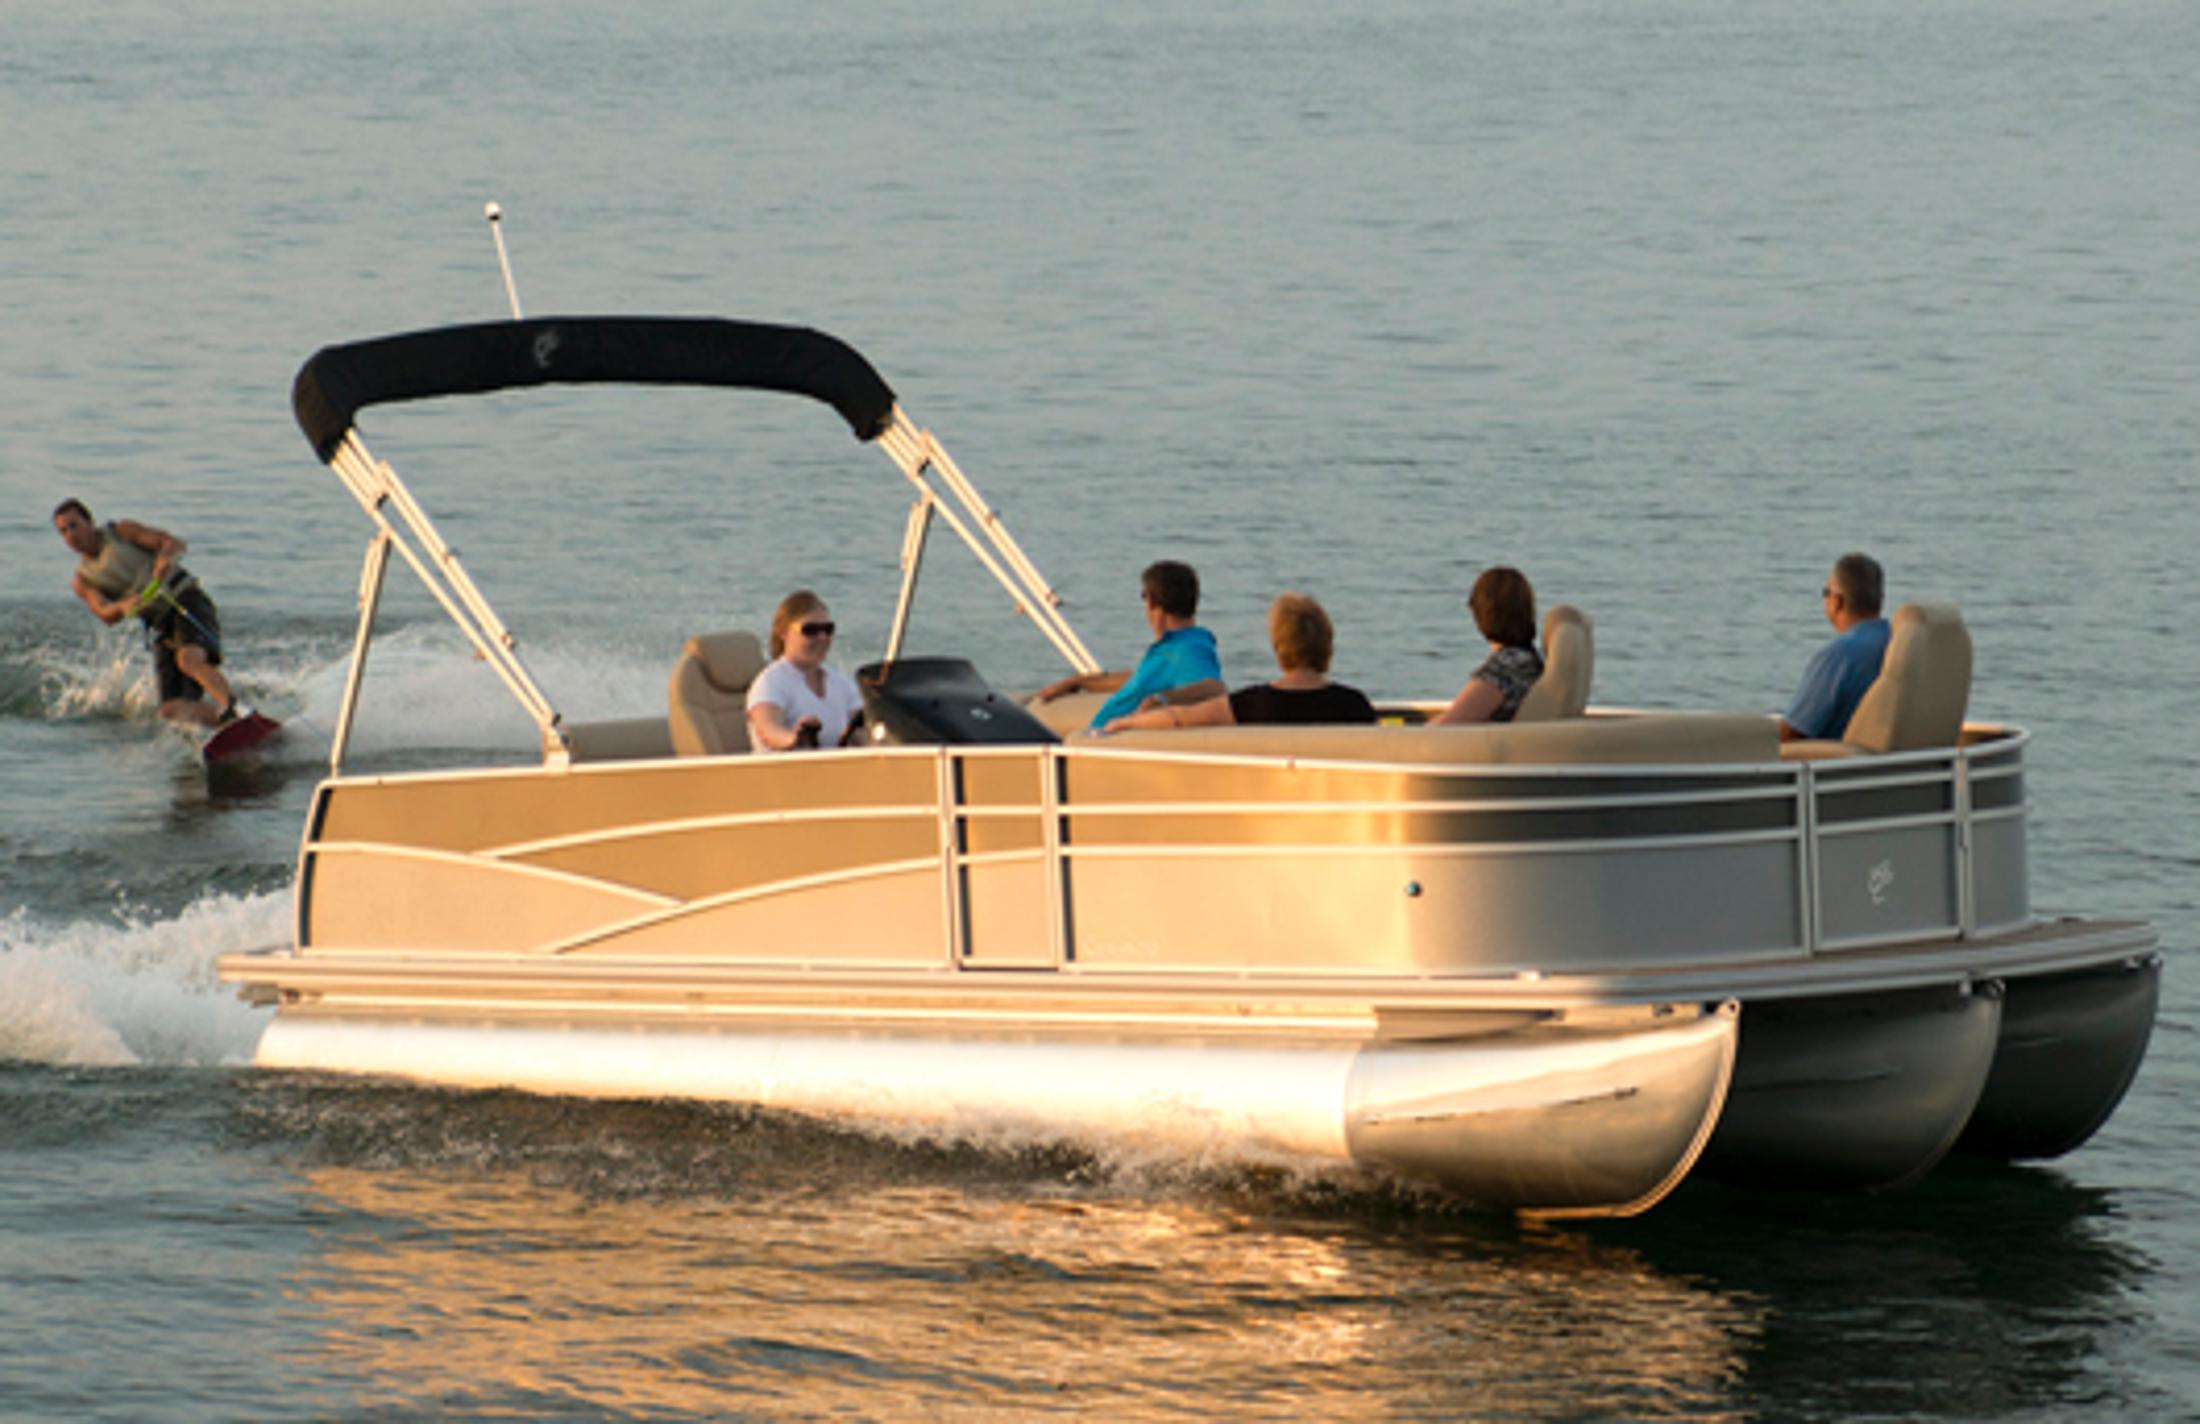 New 2013 Cypress Cay Cayman Sle 230 Power Boats Inboard In